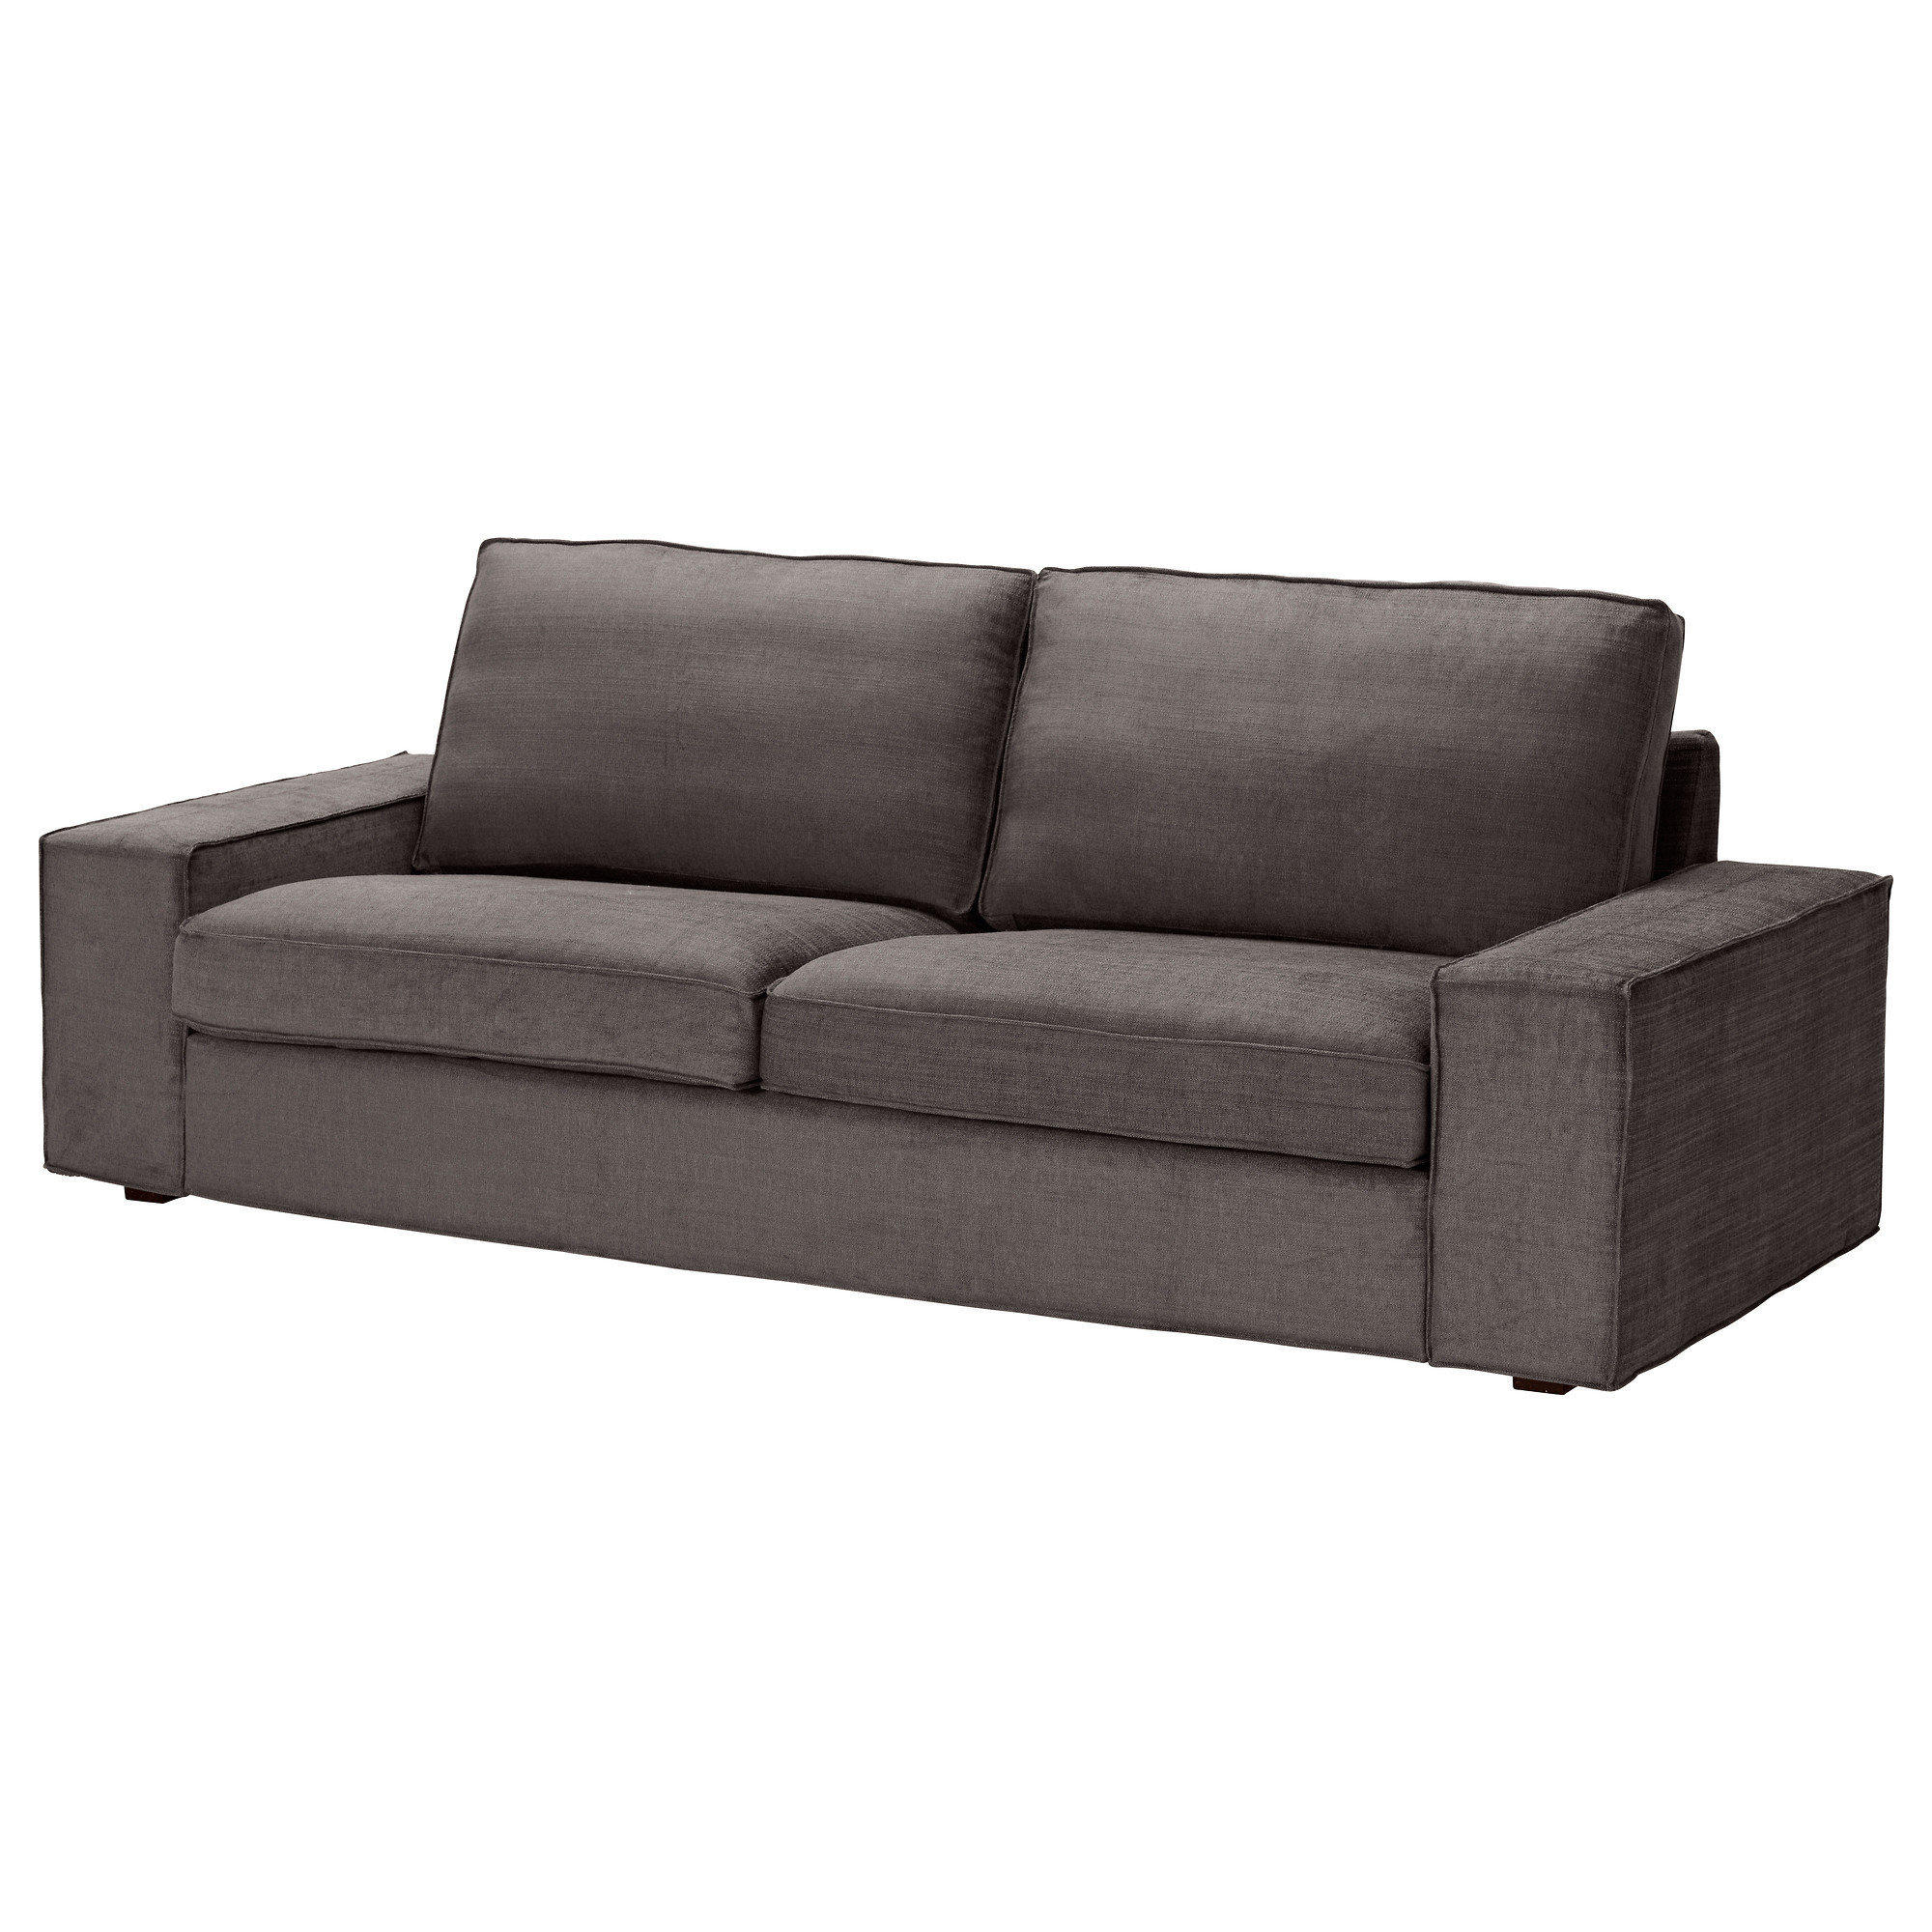 kivik sofa tullinge gray brown ikea from ikea. Black Bedroom Furniture Sets. Home Design Ideas